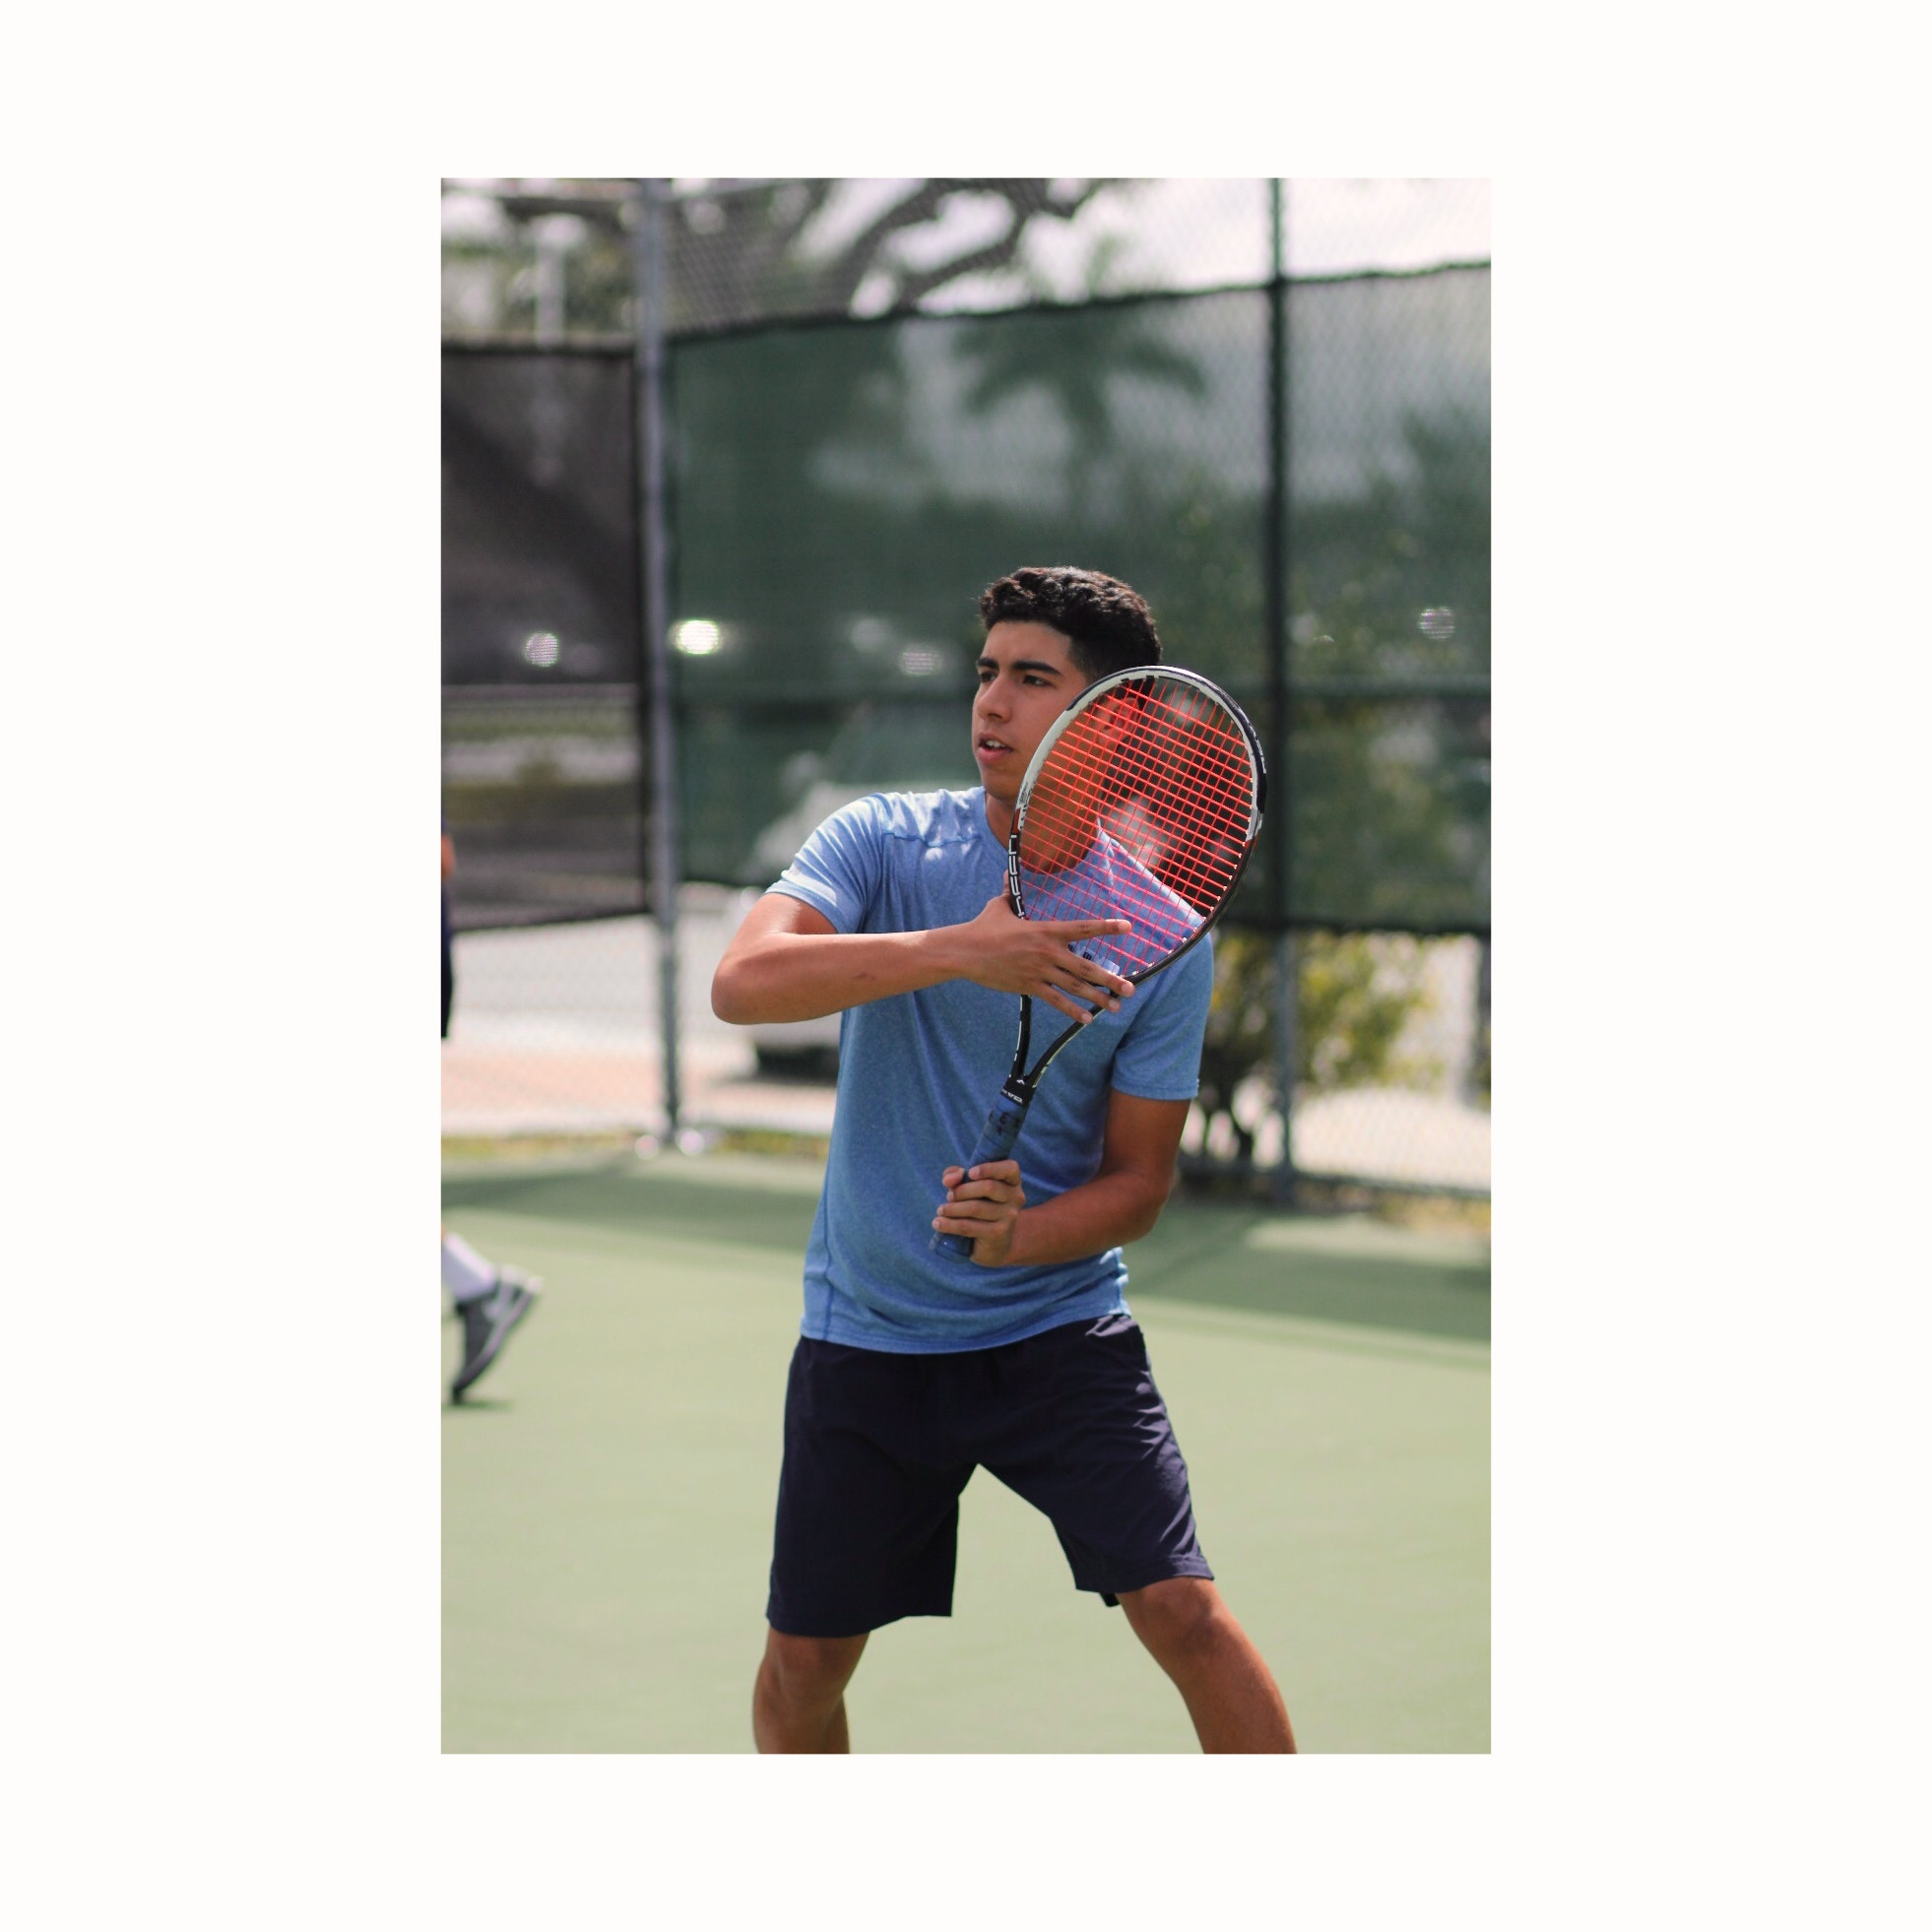 Juan A. teaches tennis lessons in Doral, FL